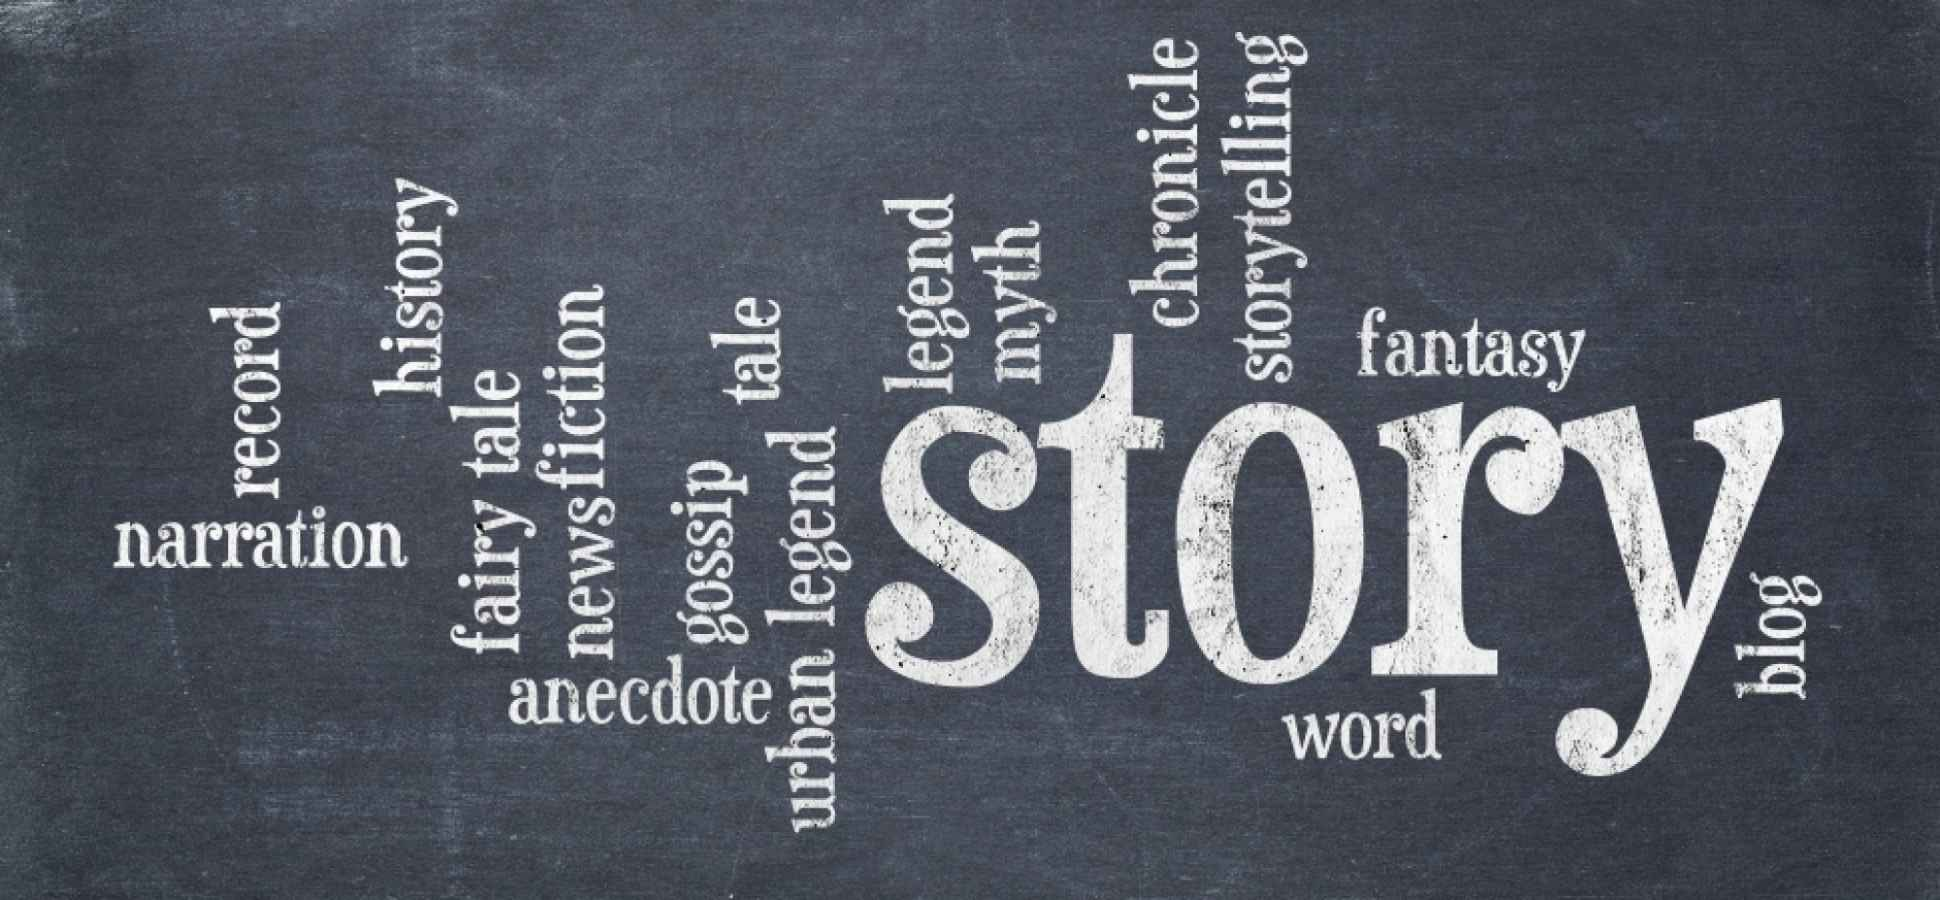 5 Great Tips to Help You Tell Better Stories